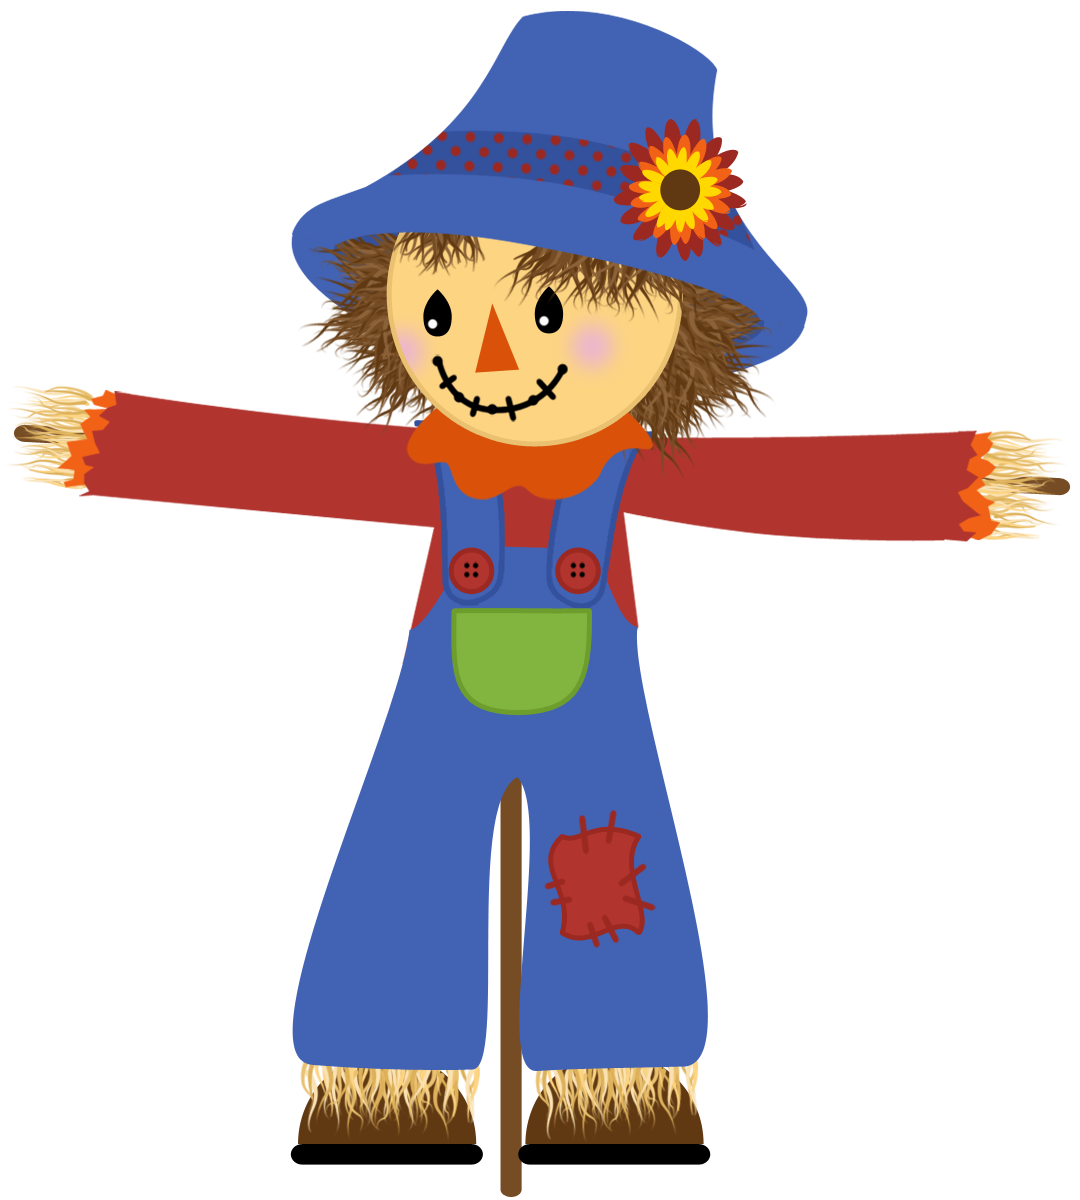 Neighbors clipart thanks. Scarecrow google search signage